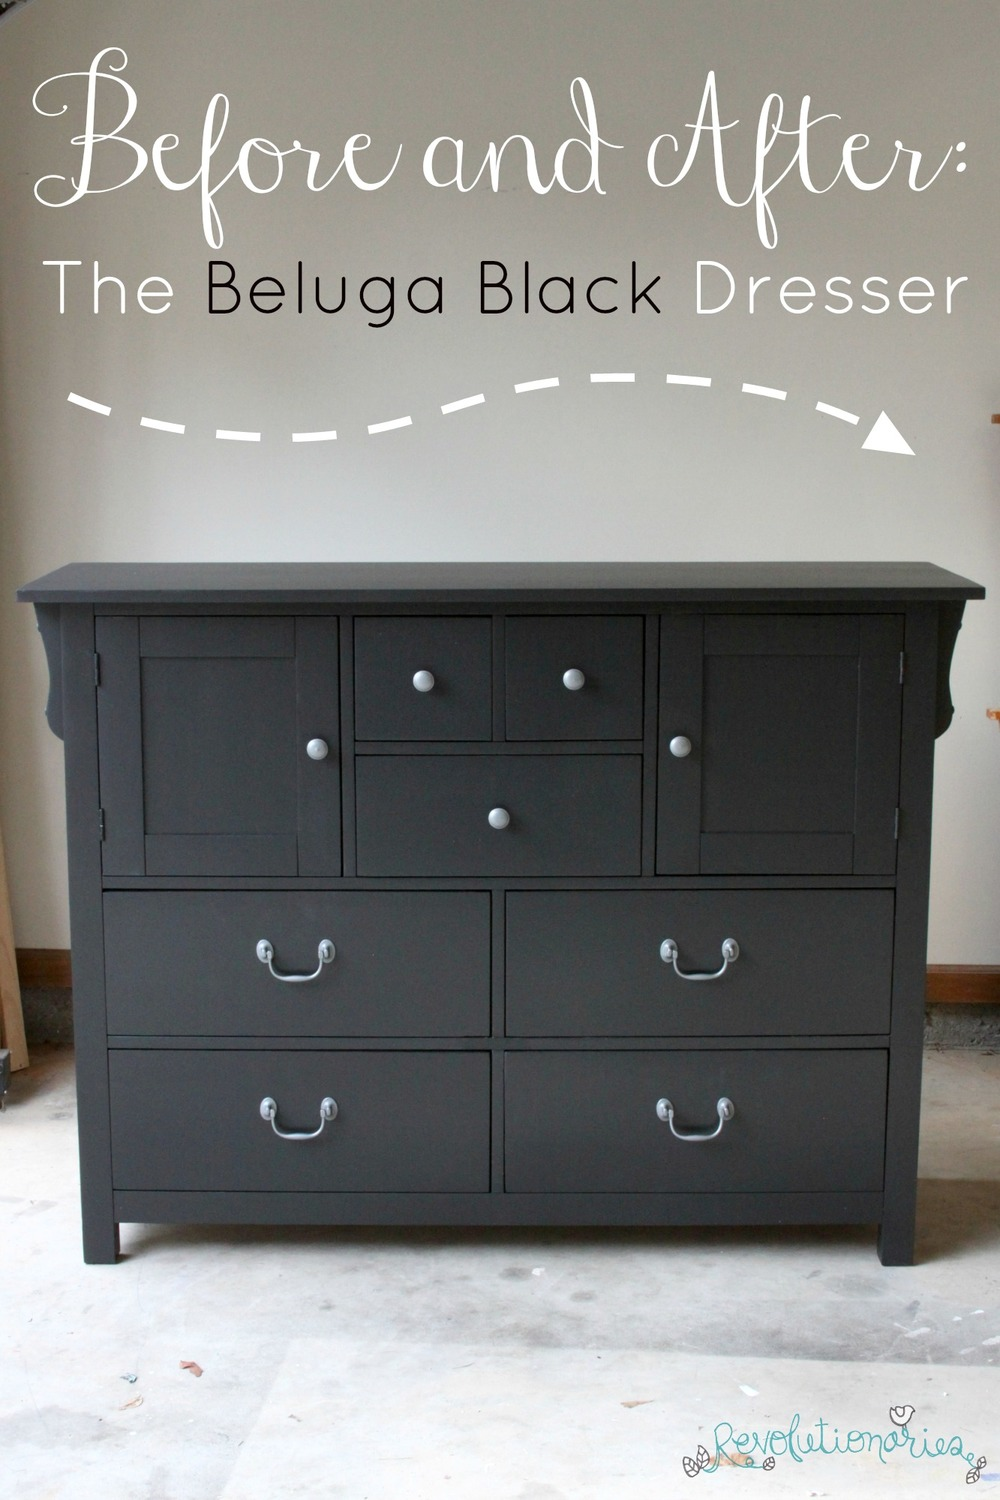 before-and-after-the-beluga-black-dresser-3.jpg